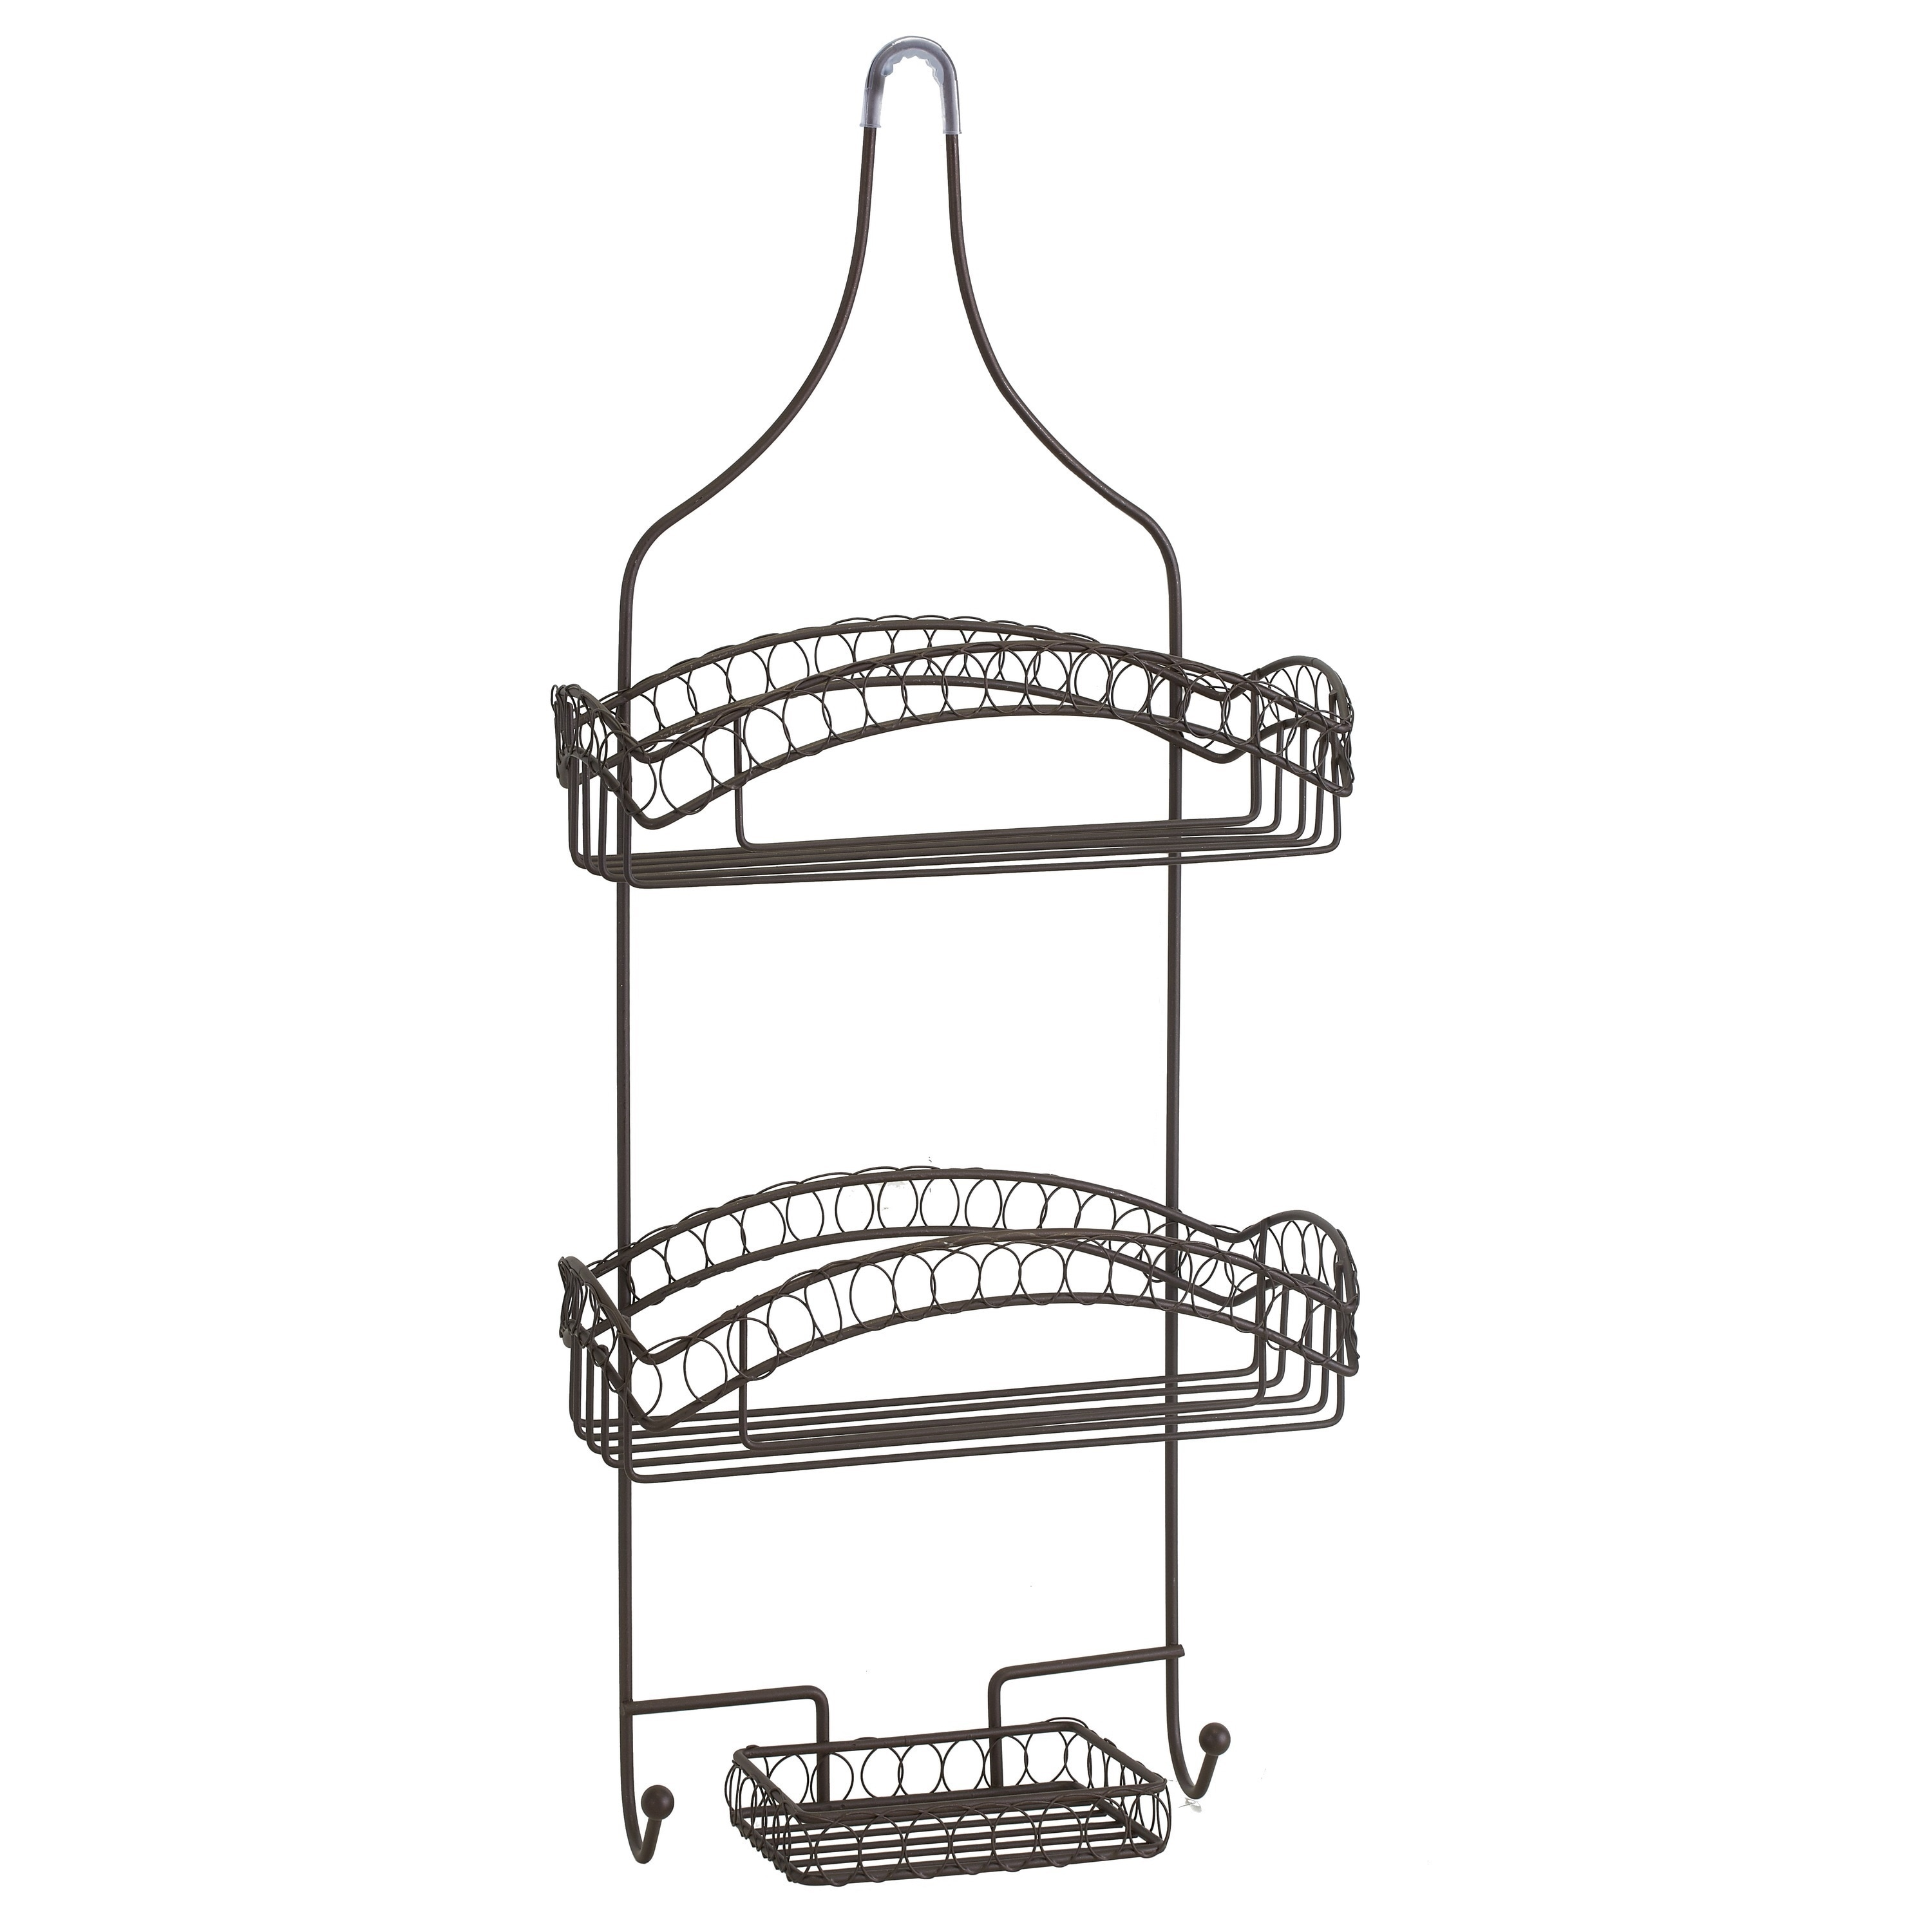 No rust shower caddy | Compare Prices at Nextag